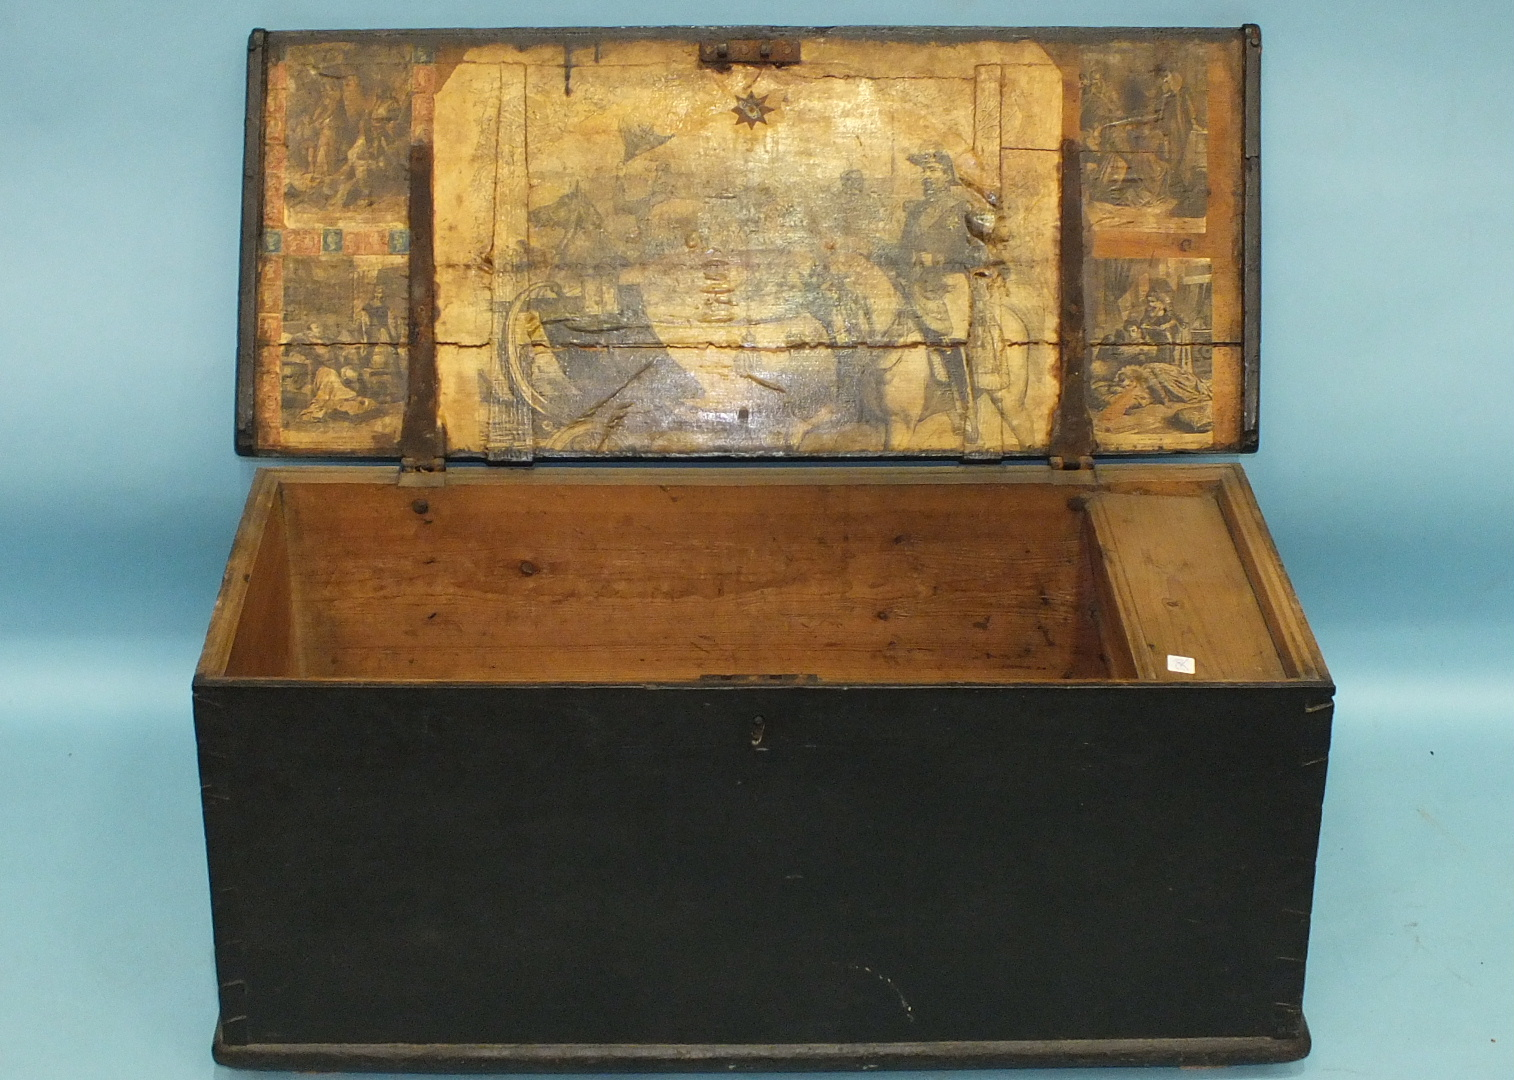 Lot 107 - A 19th century stained pine lidded box of rhomboid shape, the hinged lid opening to reveal a collage